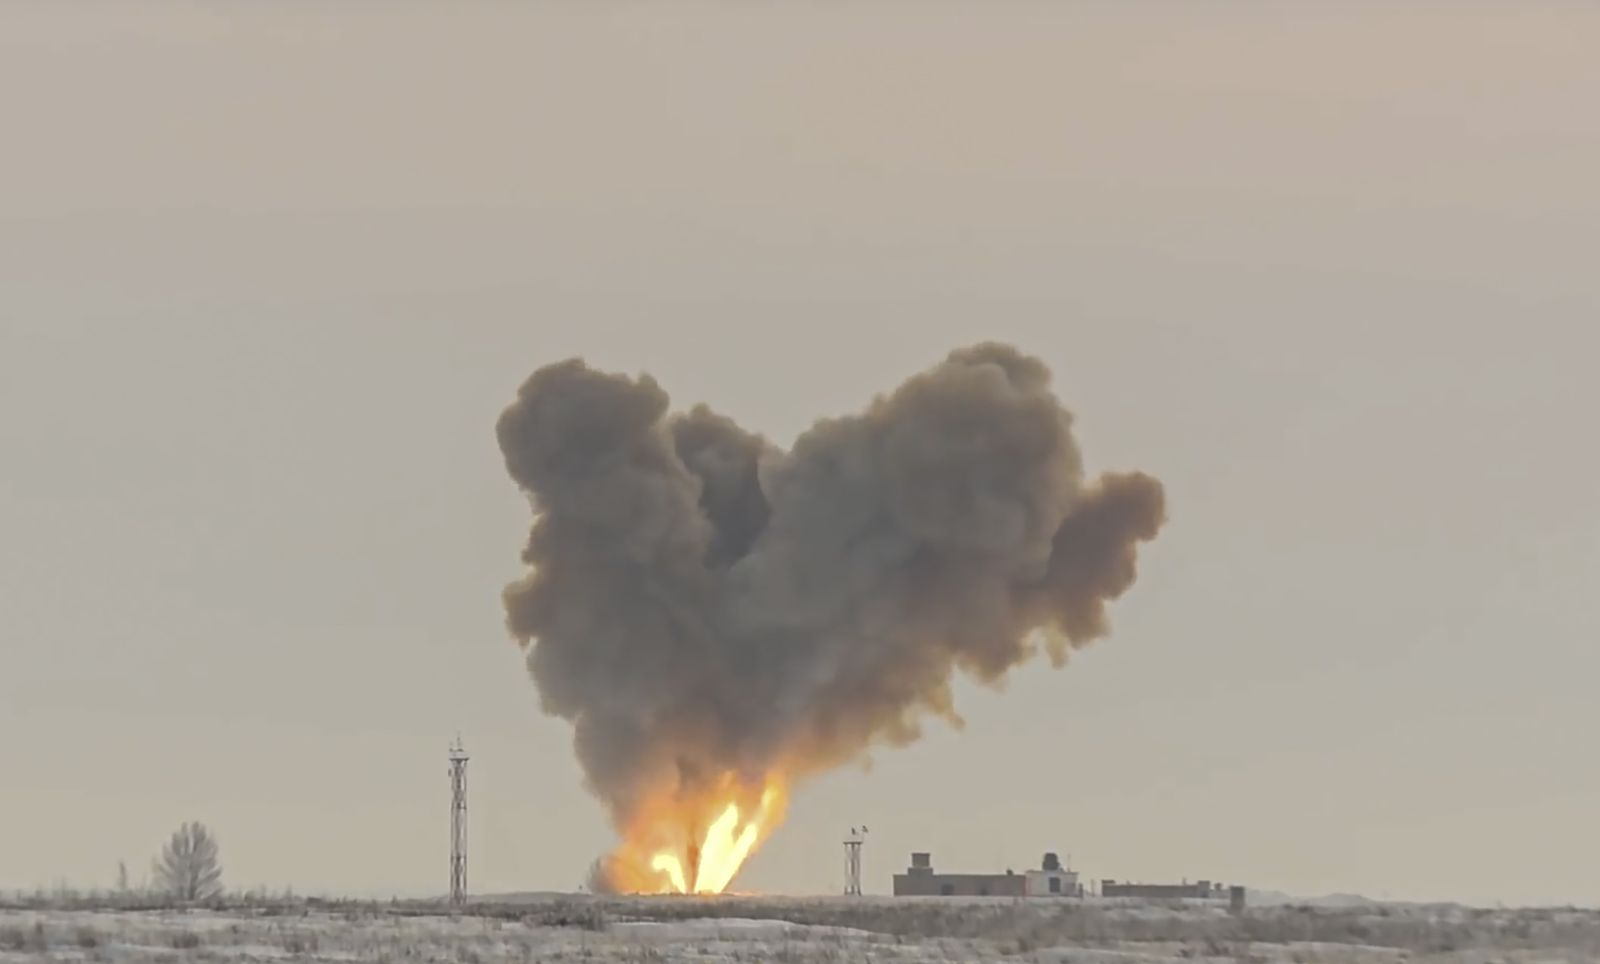 Russia's first Avangard hypersonic missile system enters service, Dombarovsky, Russian Federation - 26 Dec 2018